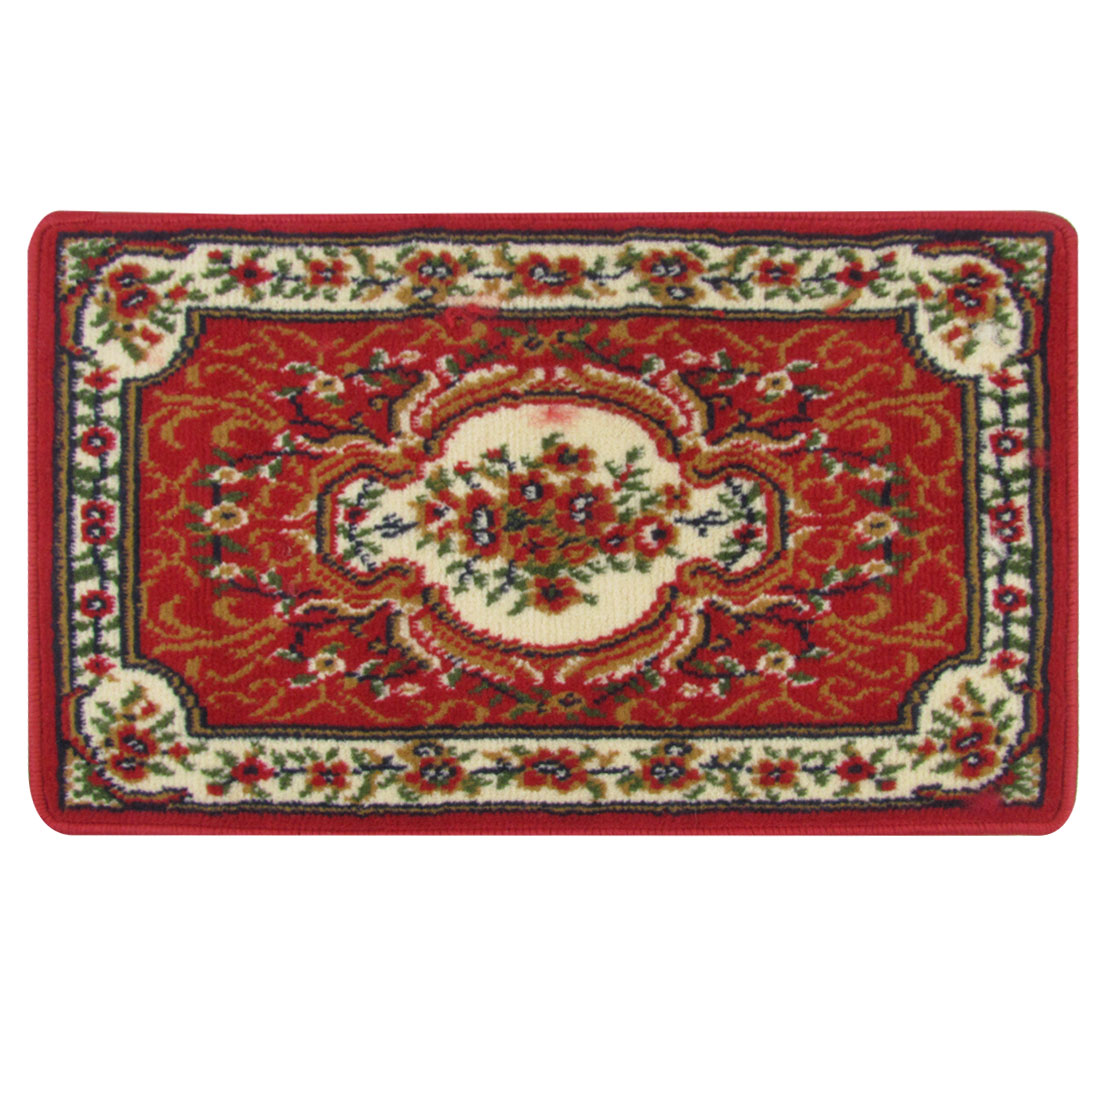 71cm x 45cm Rectangular Flourish Pattern Living Room Floor Carpet Area Rug Pad